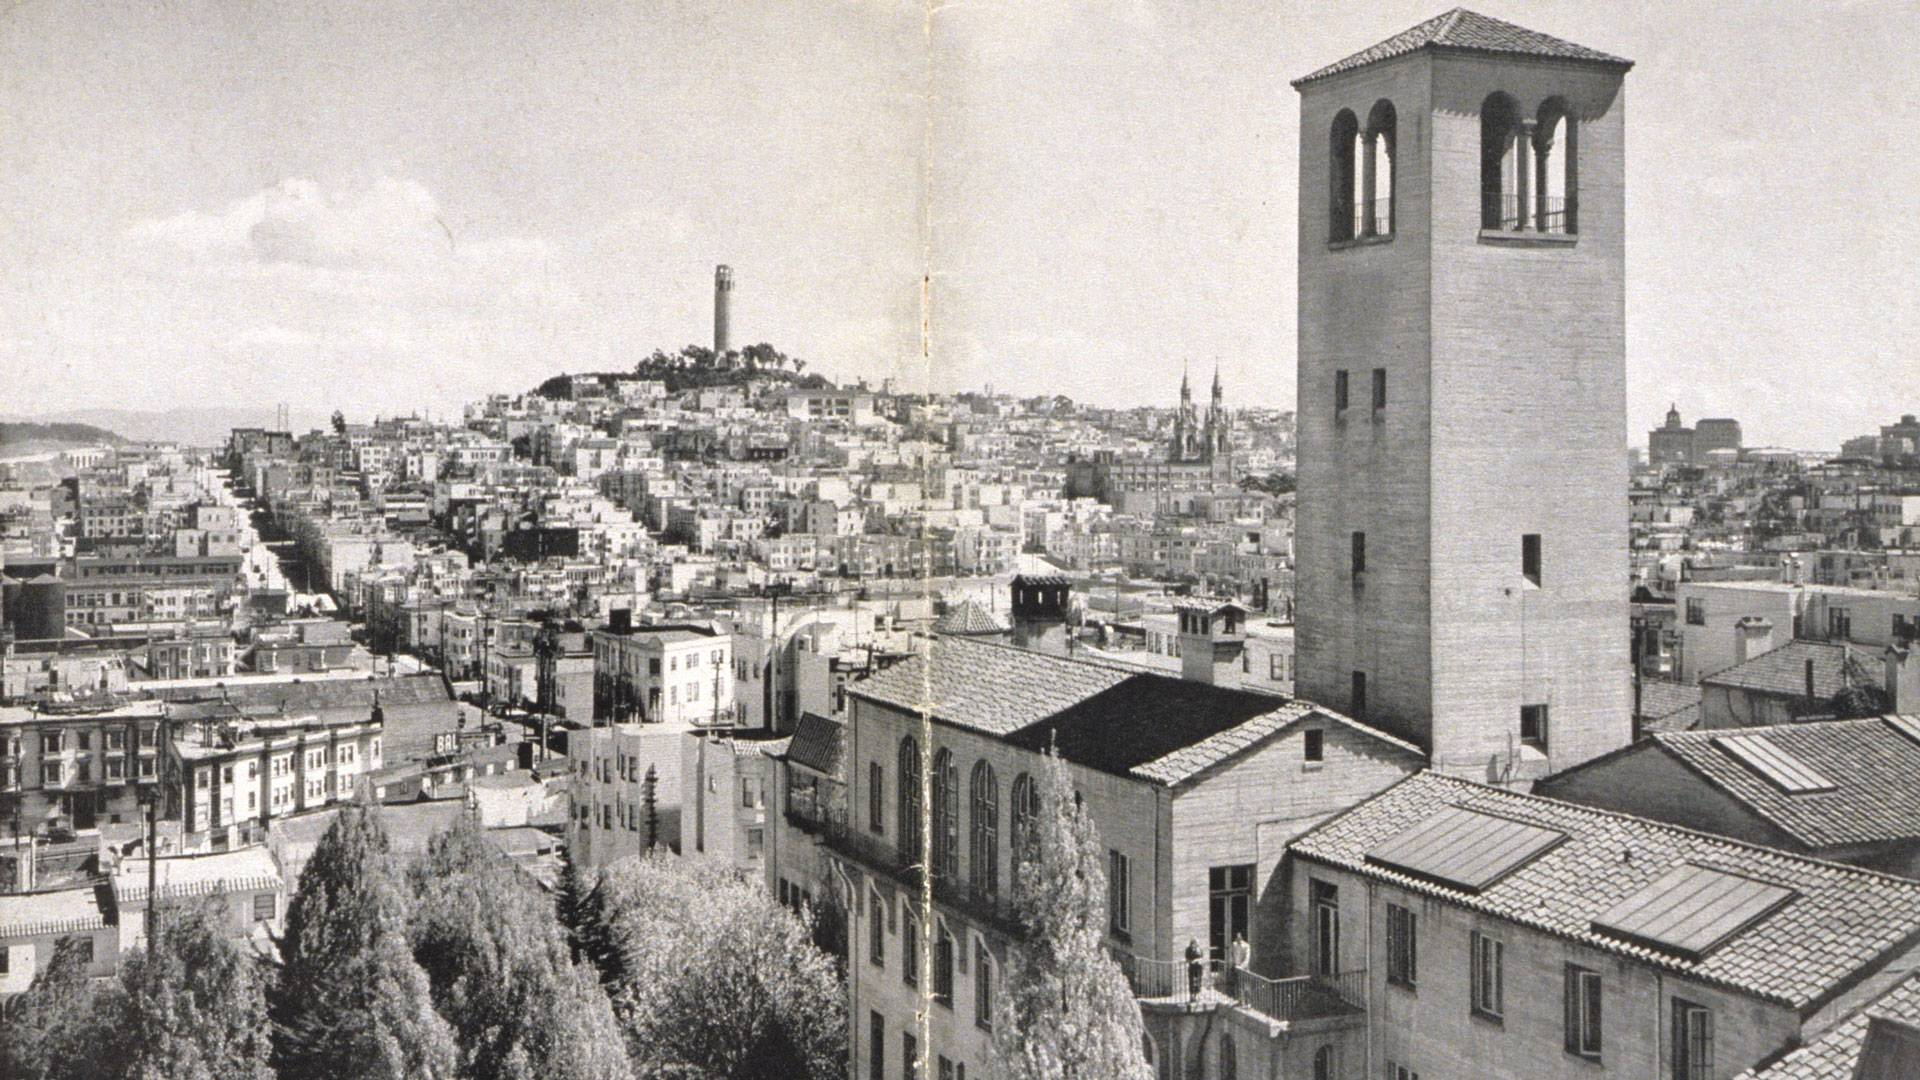 The view from SFAI's  Chestnut Street campus, photographed by Ansel Adams, c. 1939. Courtesy of SFAI